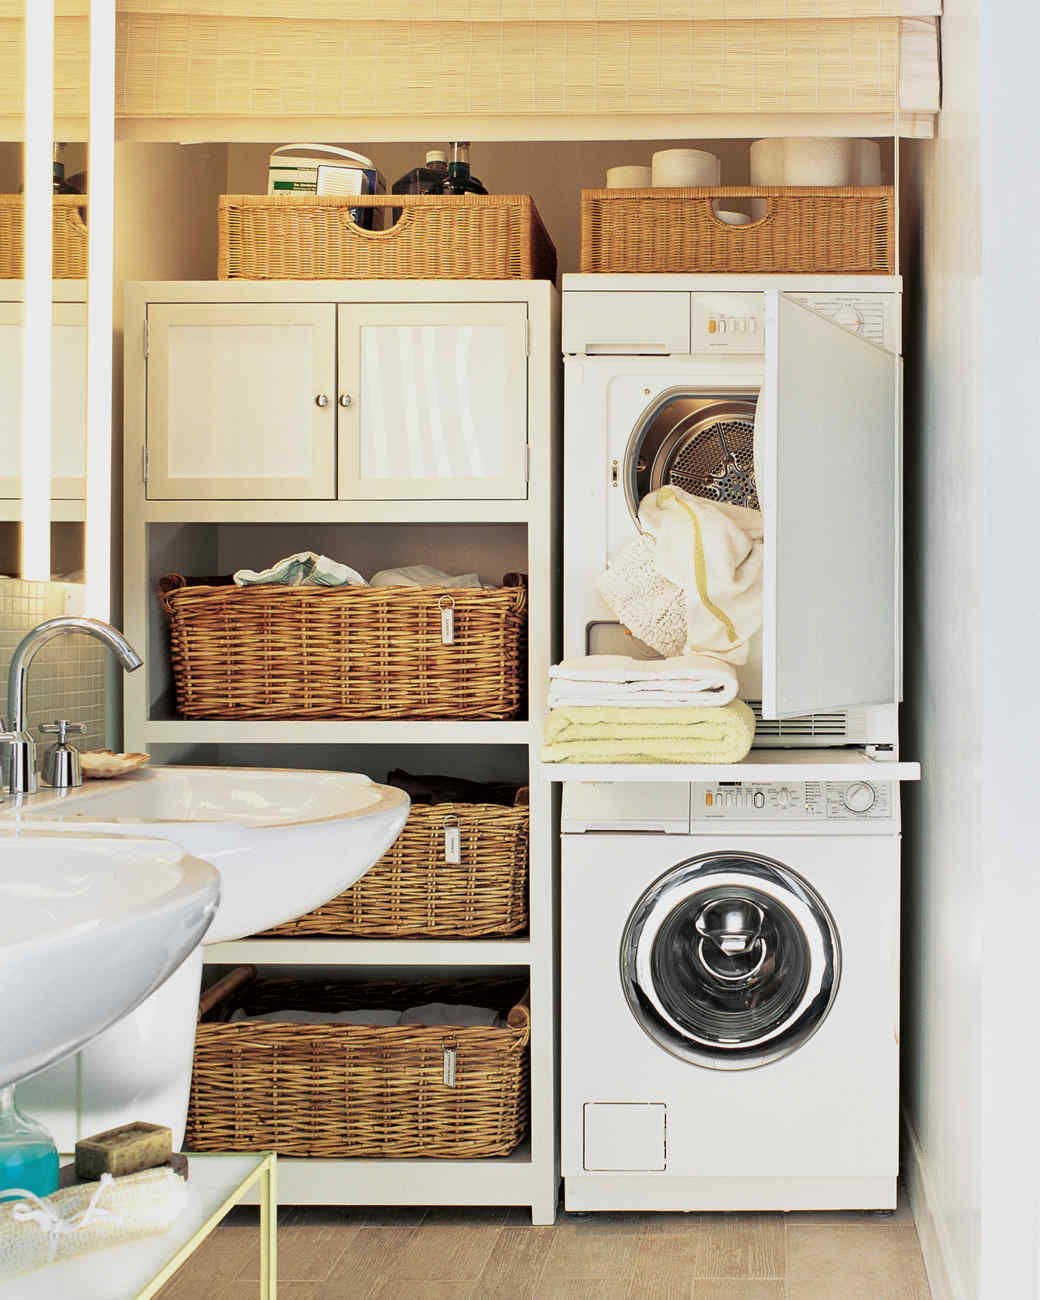 12 essential laundry room organizing tips martha stewart rh marthastewart com laundry room shelving and storage ideas laundry room storage ideas pinterest